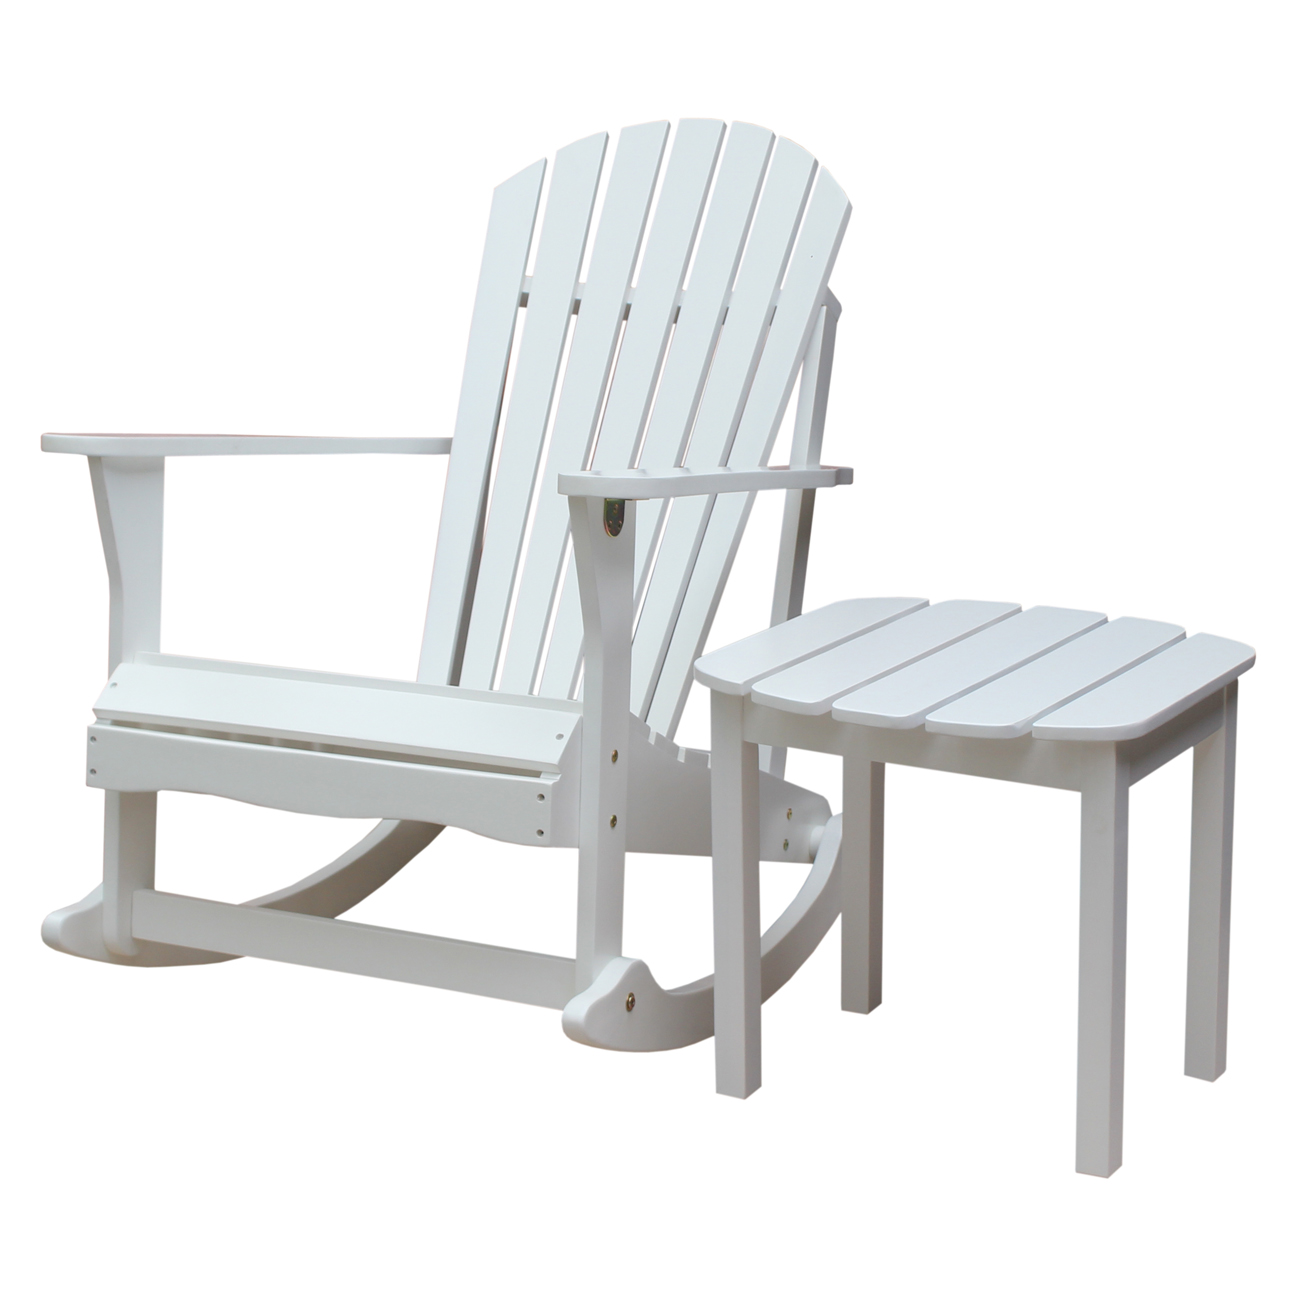 Adirondack Rocker and Side Table in White